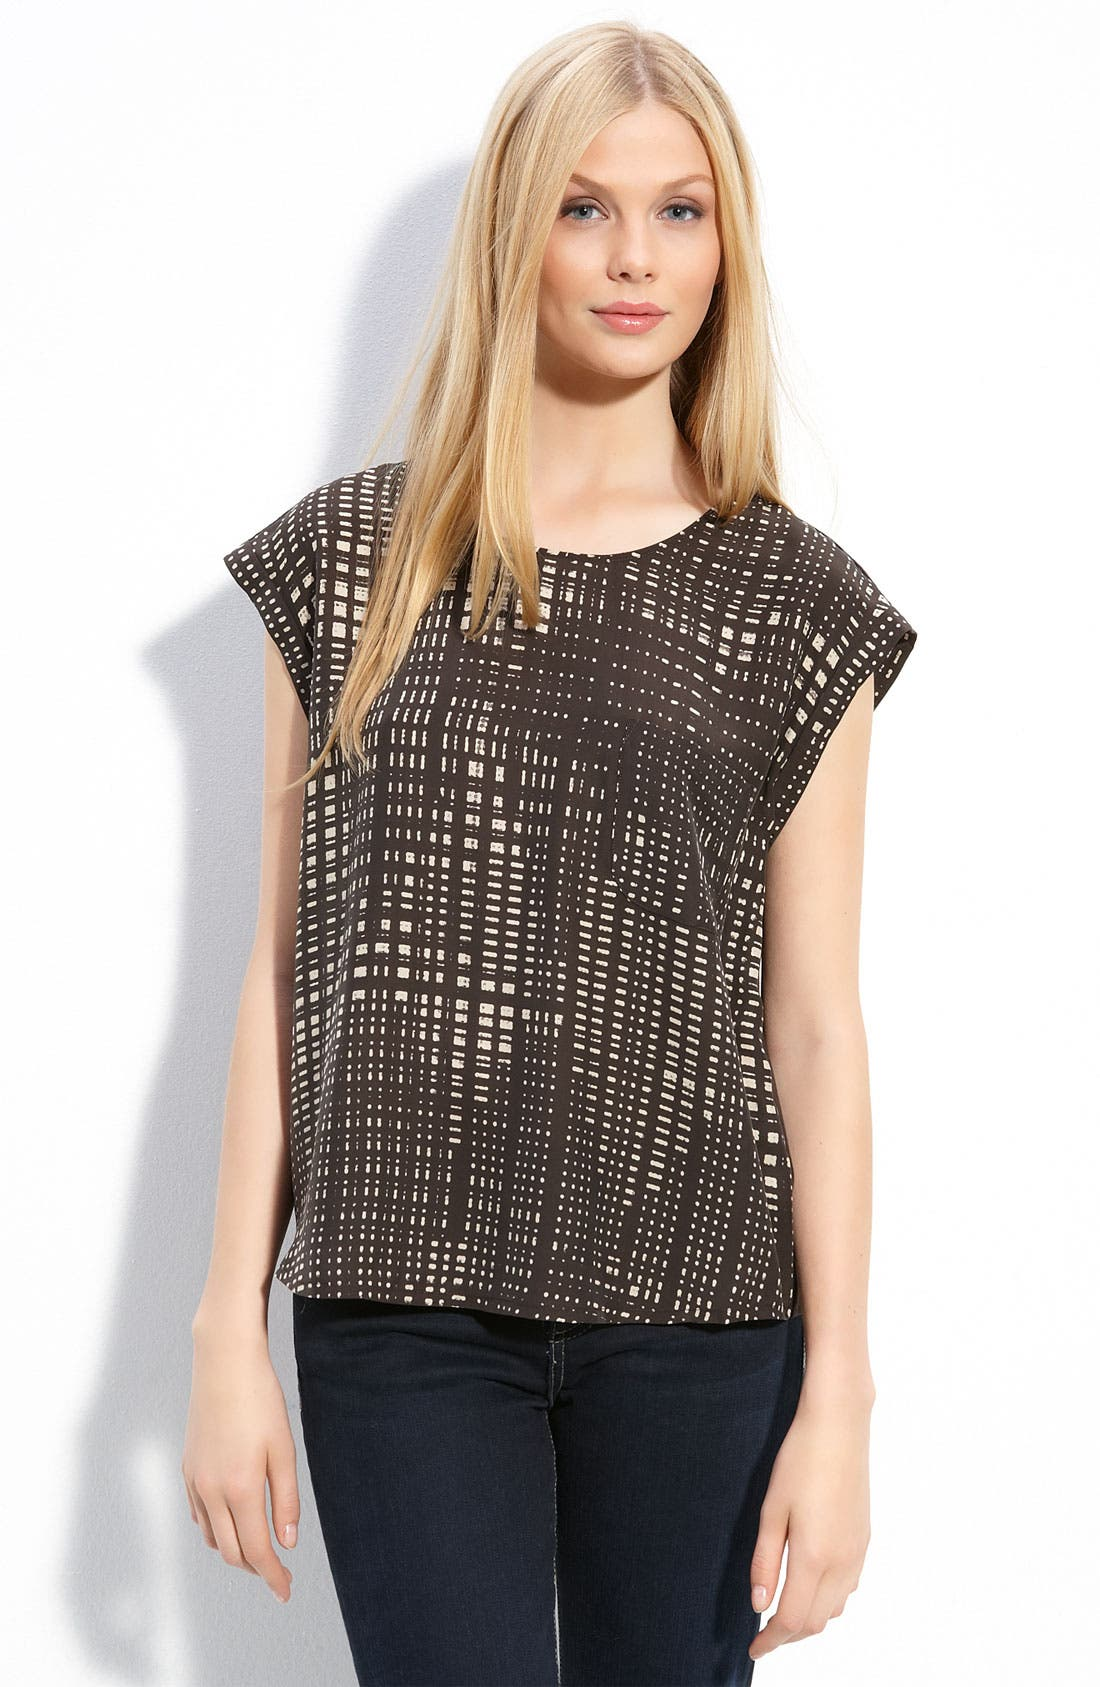 Alternate Image 1 Selected - Halogen® Cap Sleeve Blouse with Knit Back (Petite)